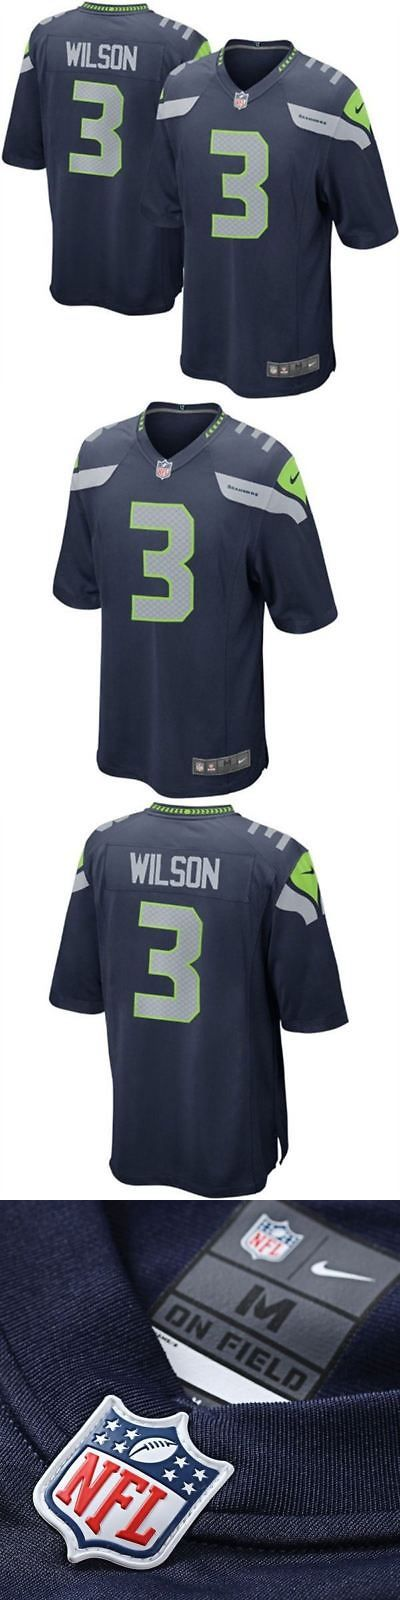 Youth 159111: Nike Nfl Youth Seattle Seahawks #3 Russel Wilson Game Jersey -> BUY IT NOW ONLY: $75 on eBay!